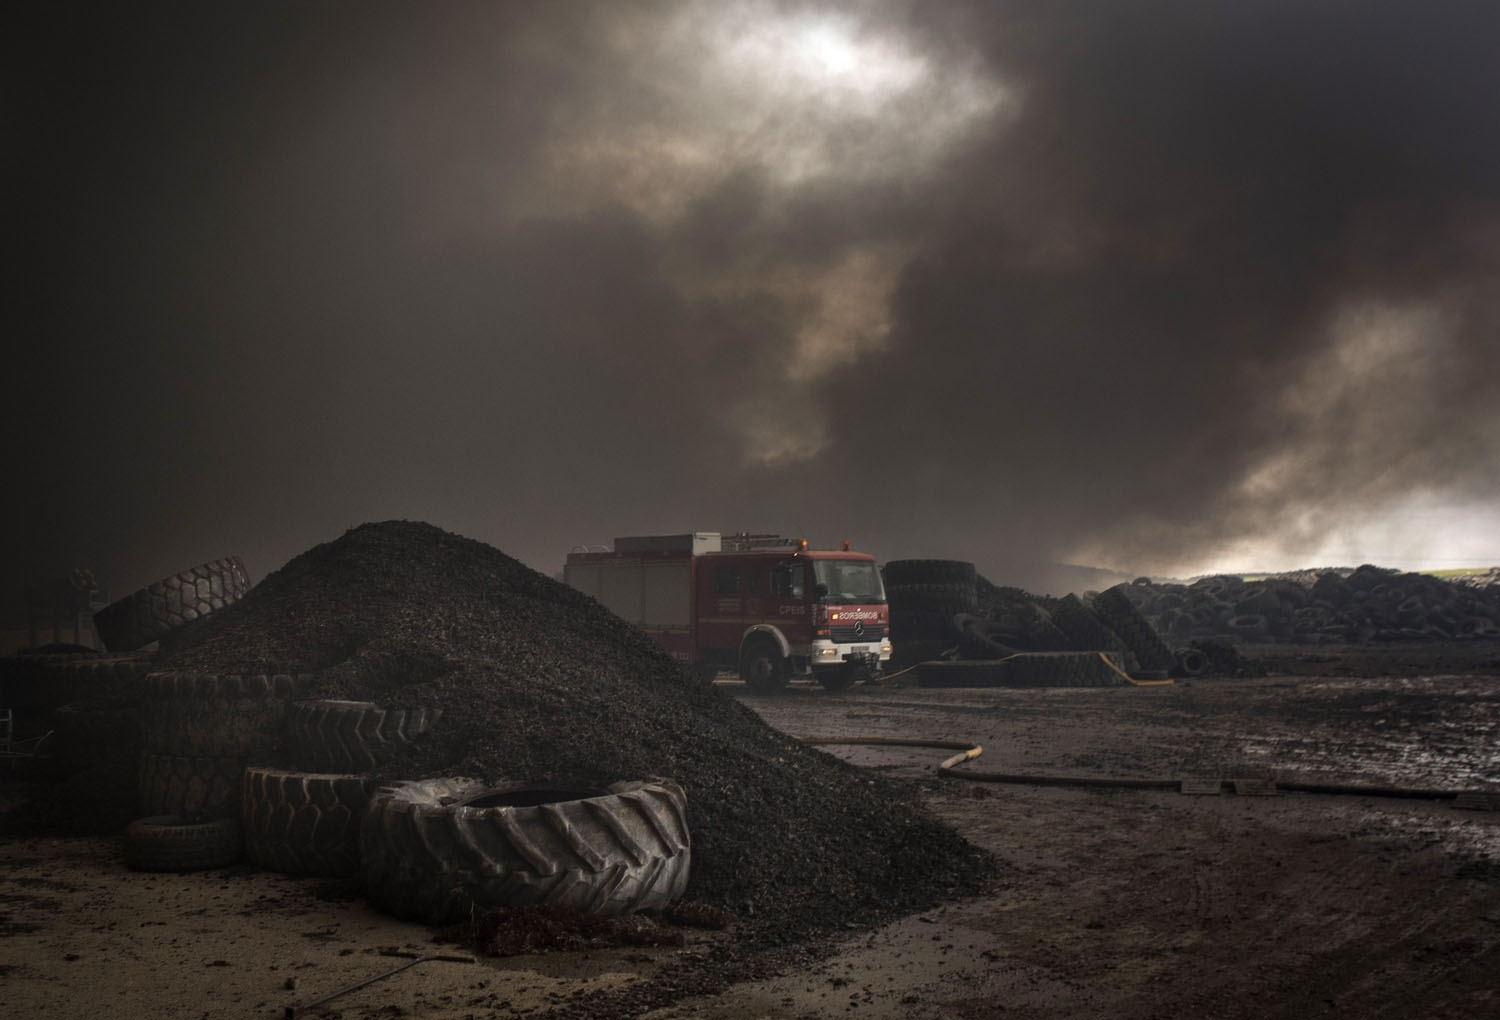 Clouds of dark smoke cover the sky as a fire truck drives among piles of tyres in an uncontrolled dump near the town of Sesena, after a fire brokeout early on May 13, 2016